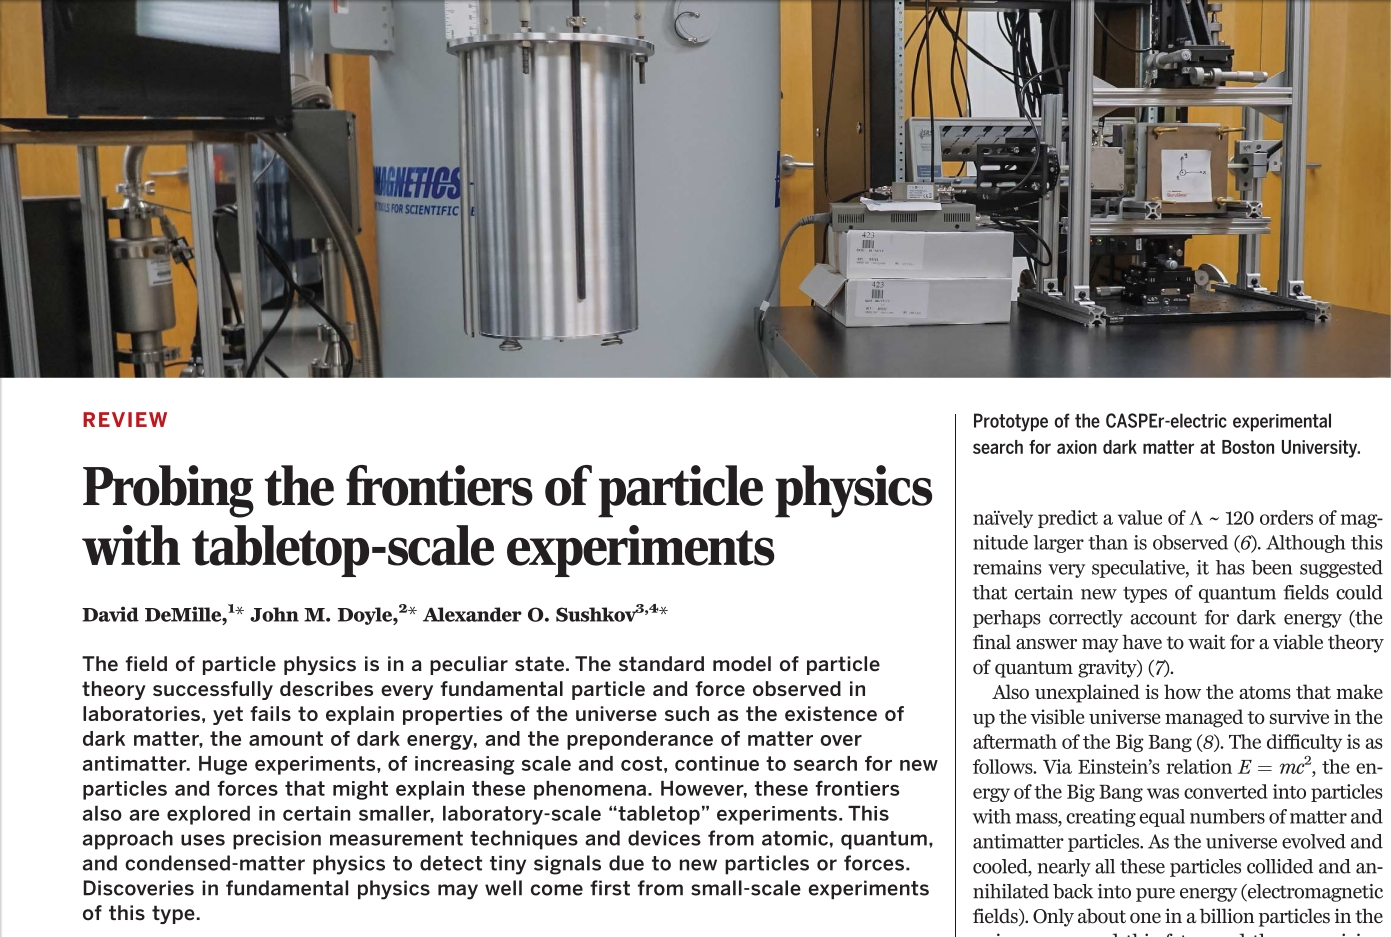 http://science.sciencemag.org/content/357/6355/990